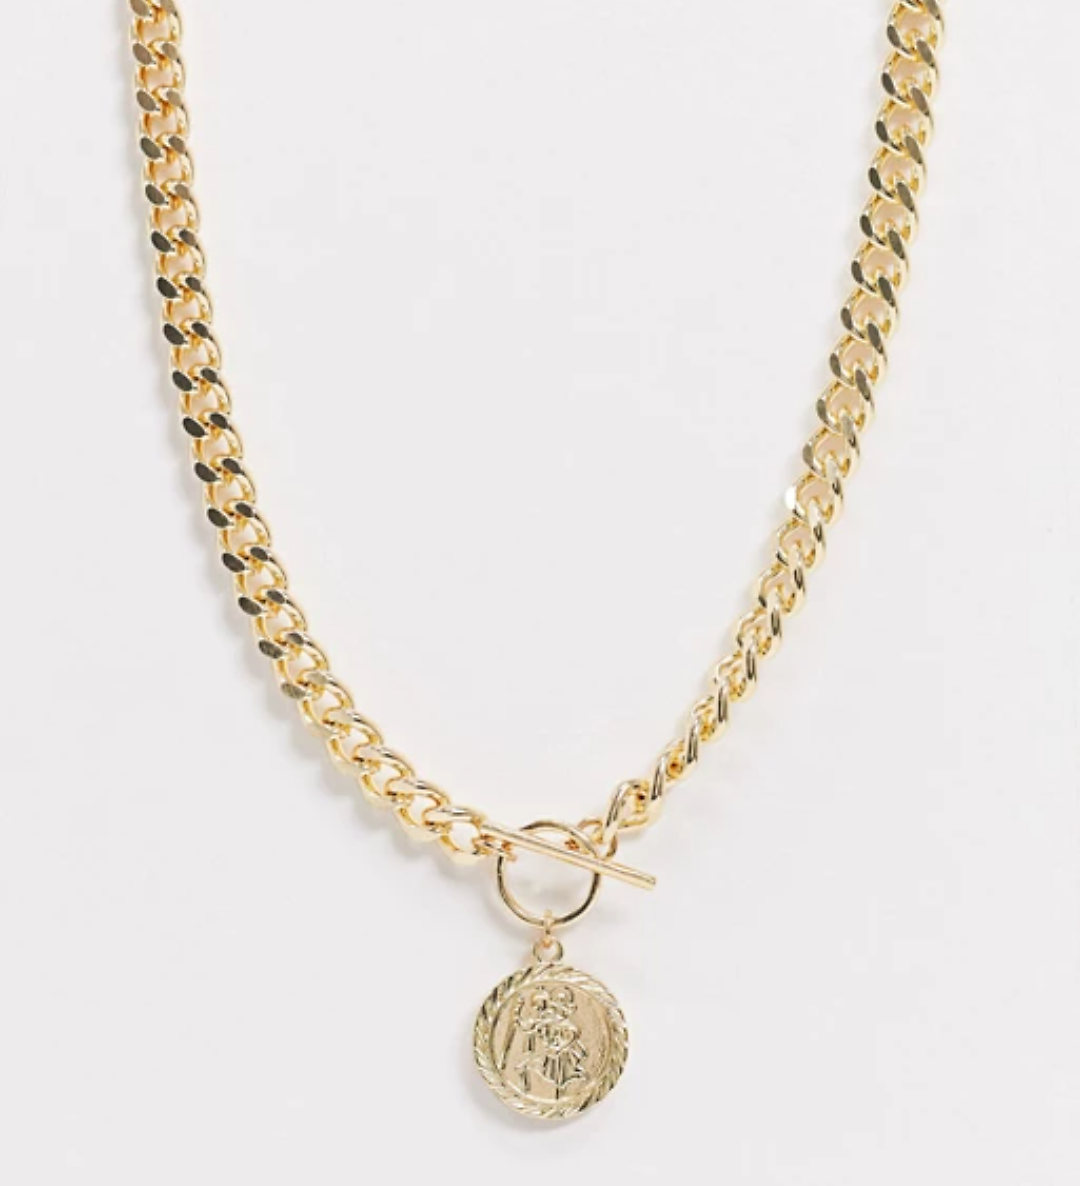 25% OFF Curve T Bar Necklace with Coin in Gold Tone | ASOS